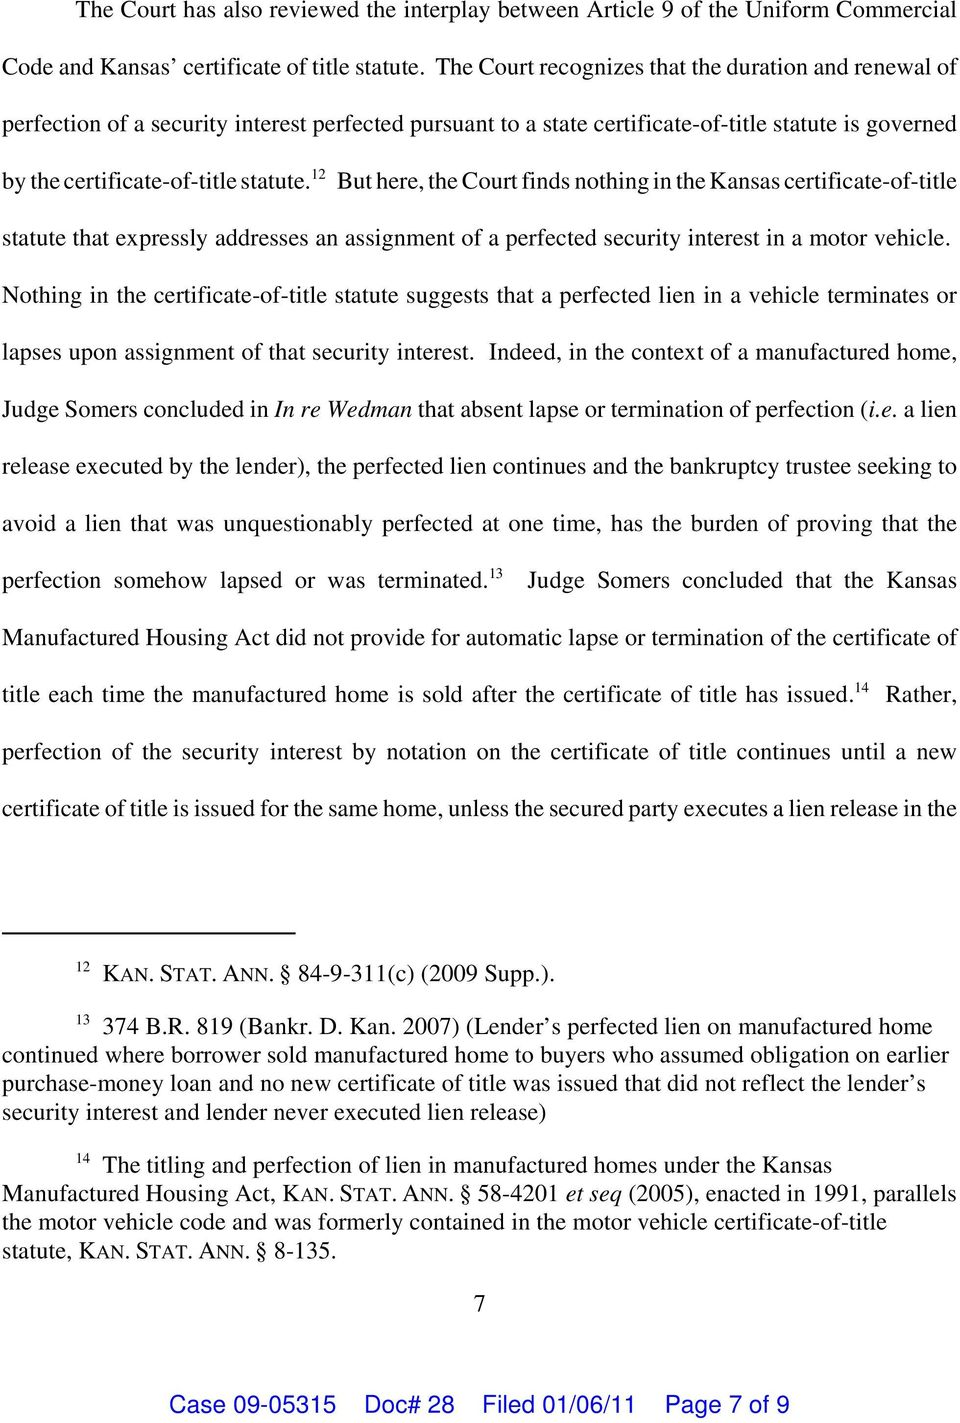 12 But here, the Court finds nothing in the Kansas certificate-of-title statute that expressly addresses an assignment of a perfected security interest in a motor vehicle.